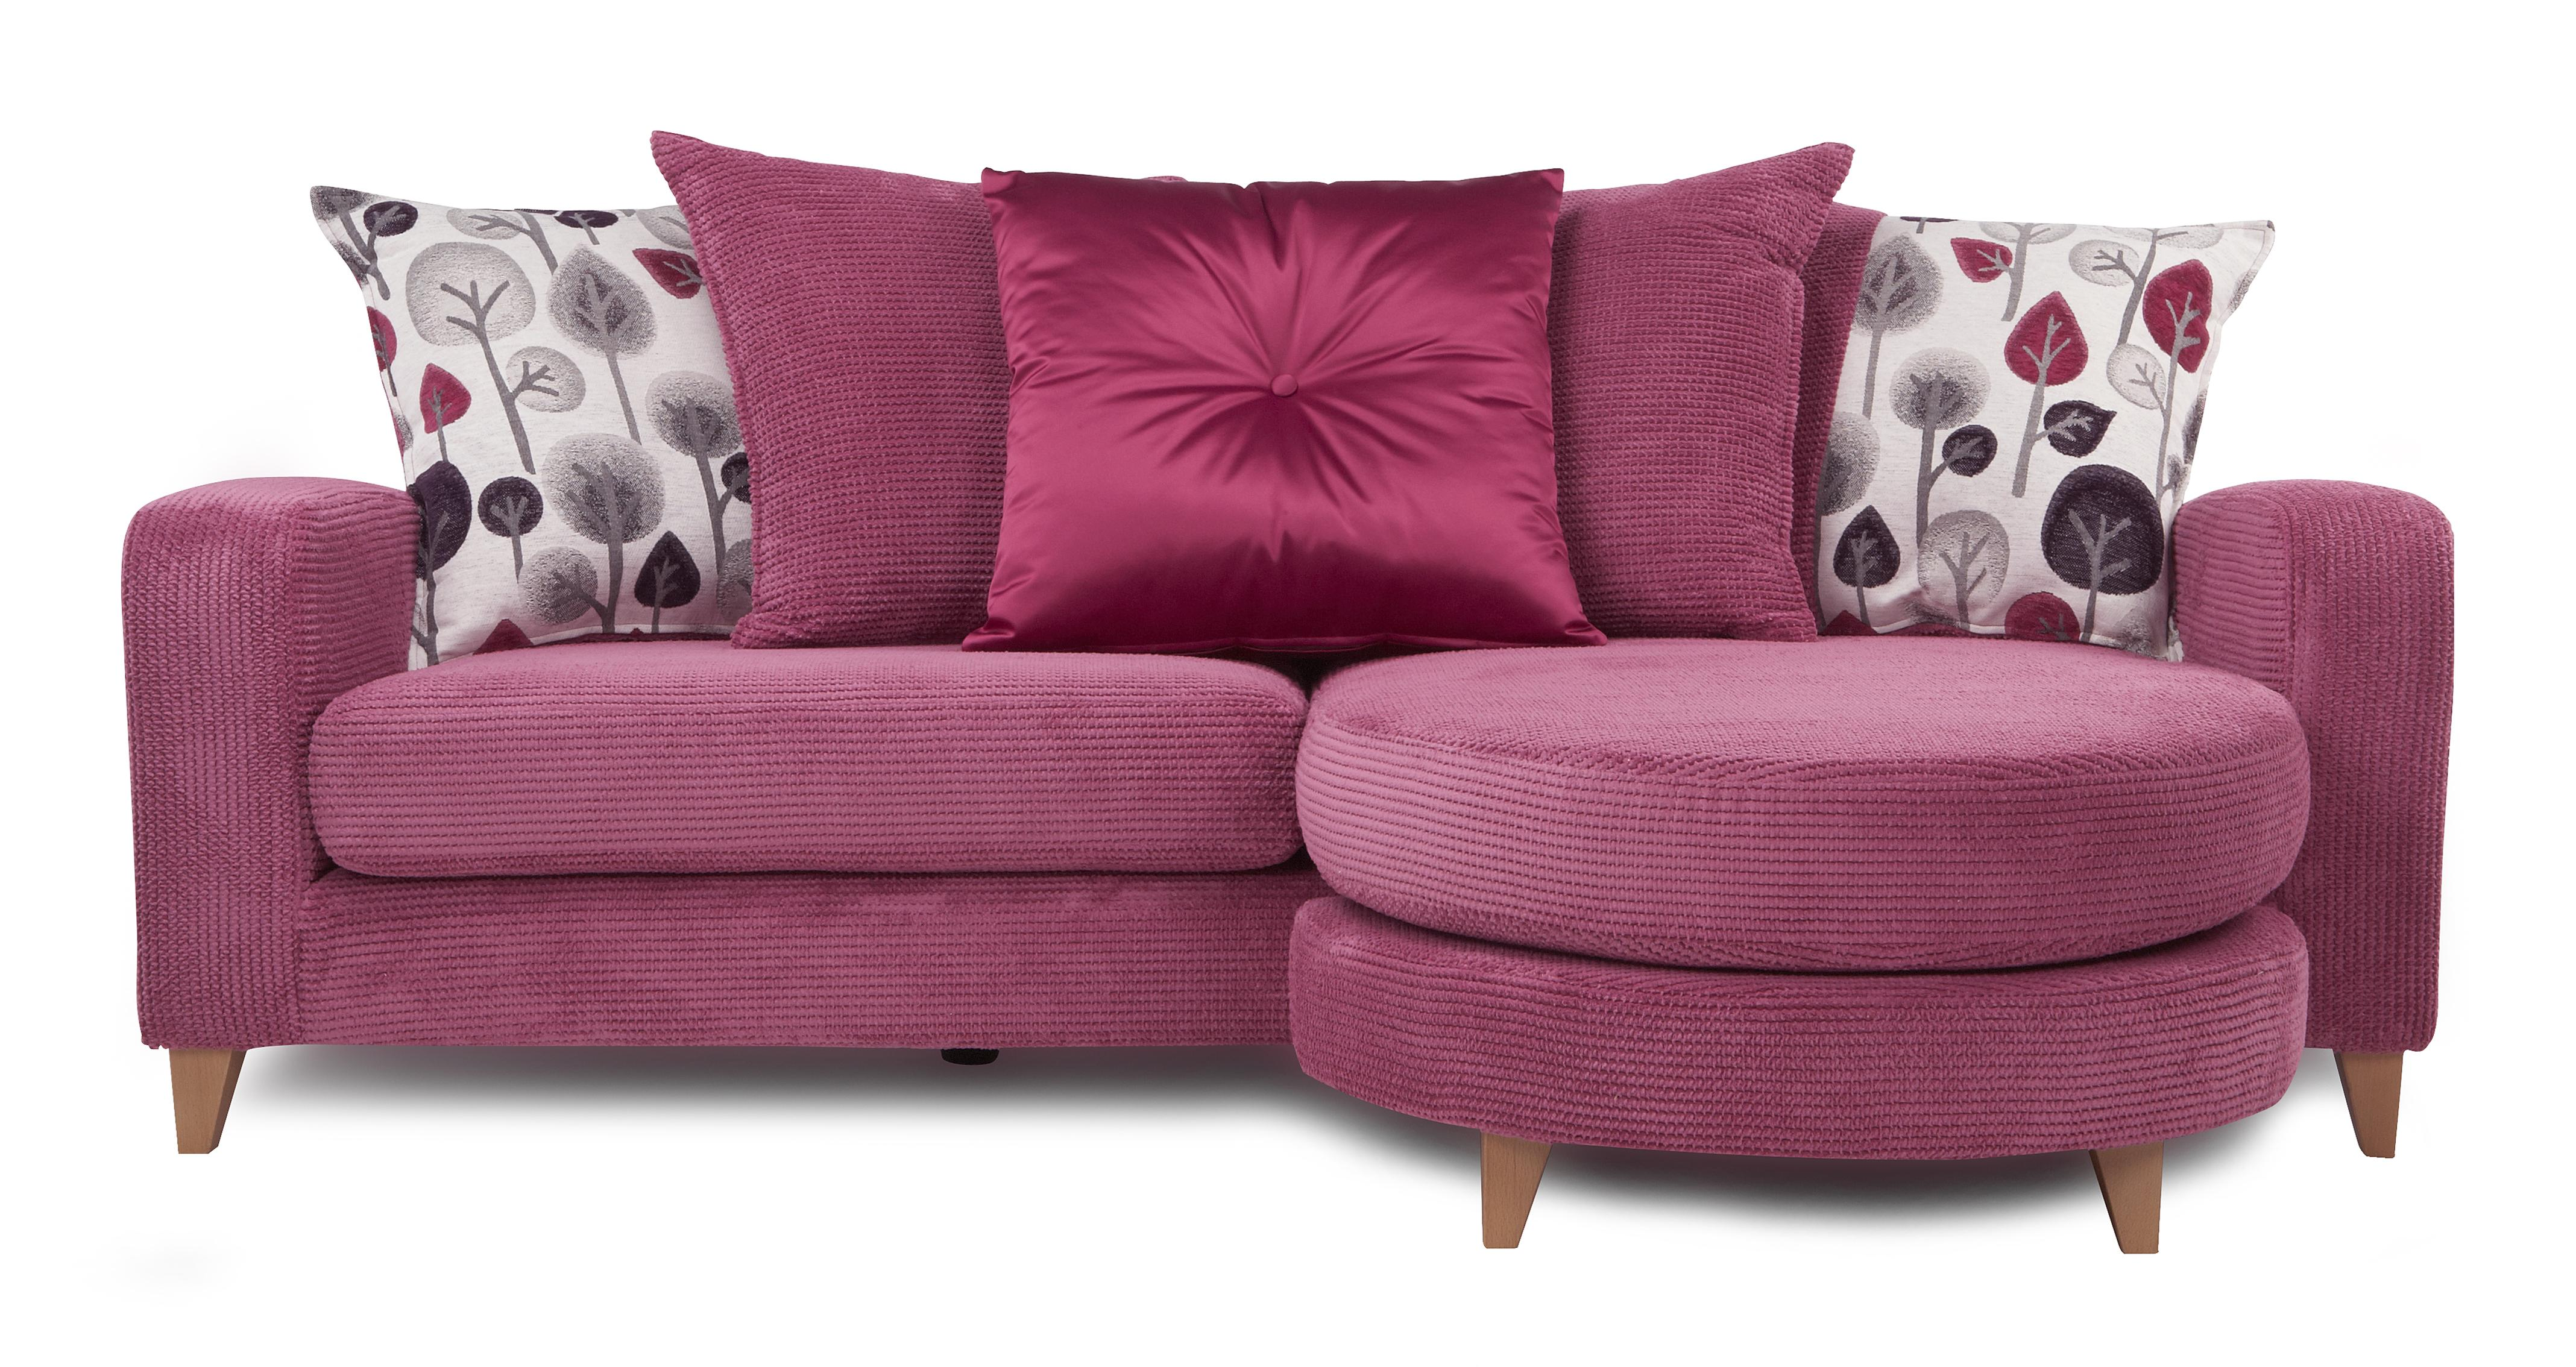 Dfs Blush Set Inc 4 Seater Lounger 2 Seater Sofa Bed